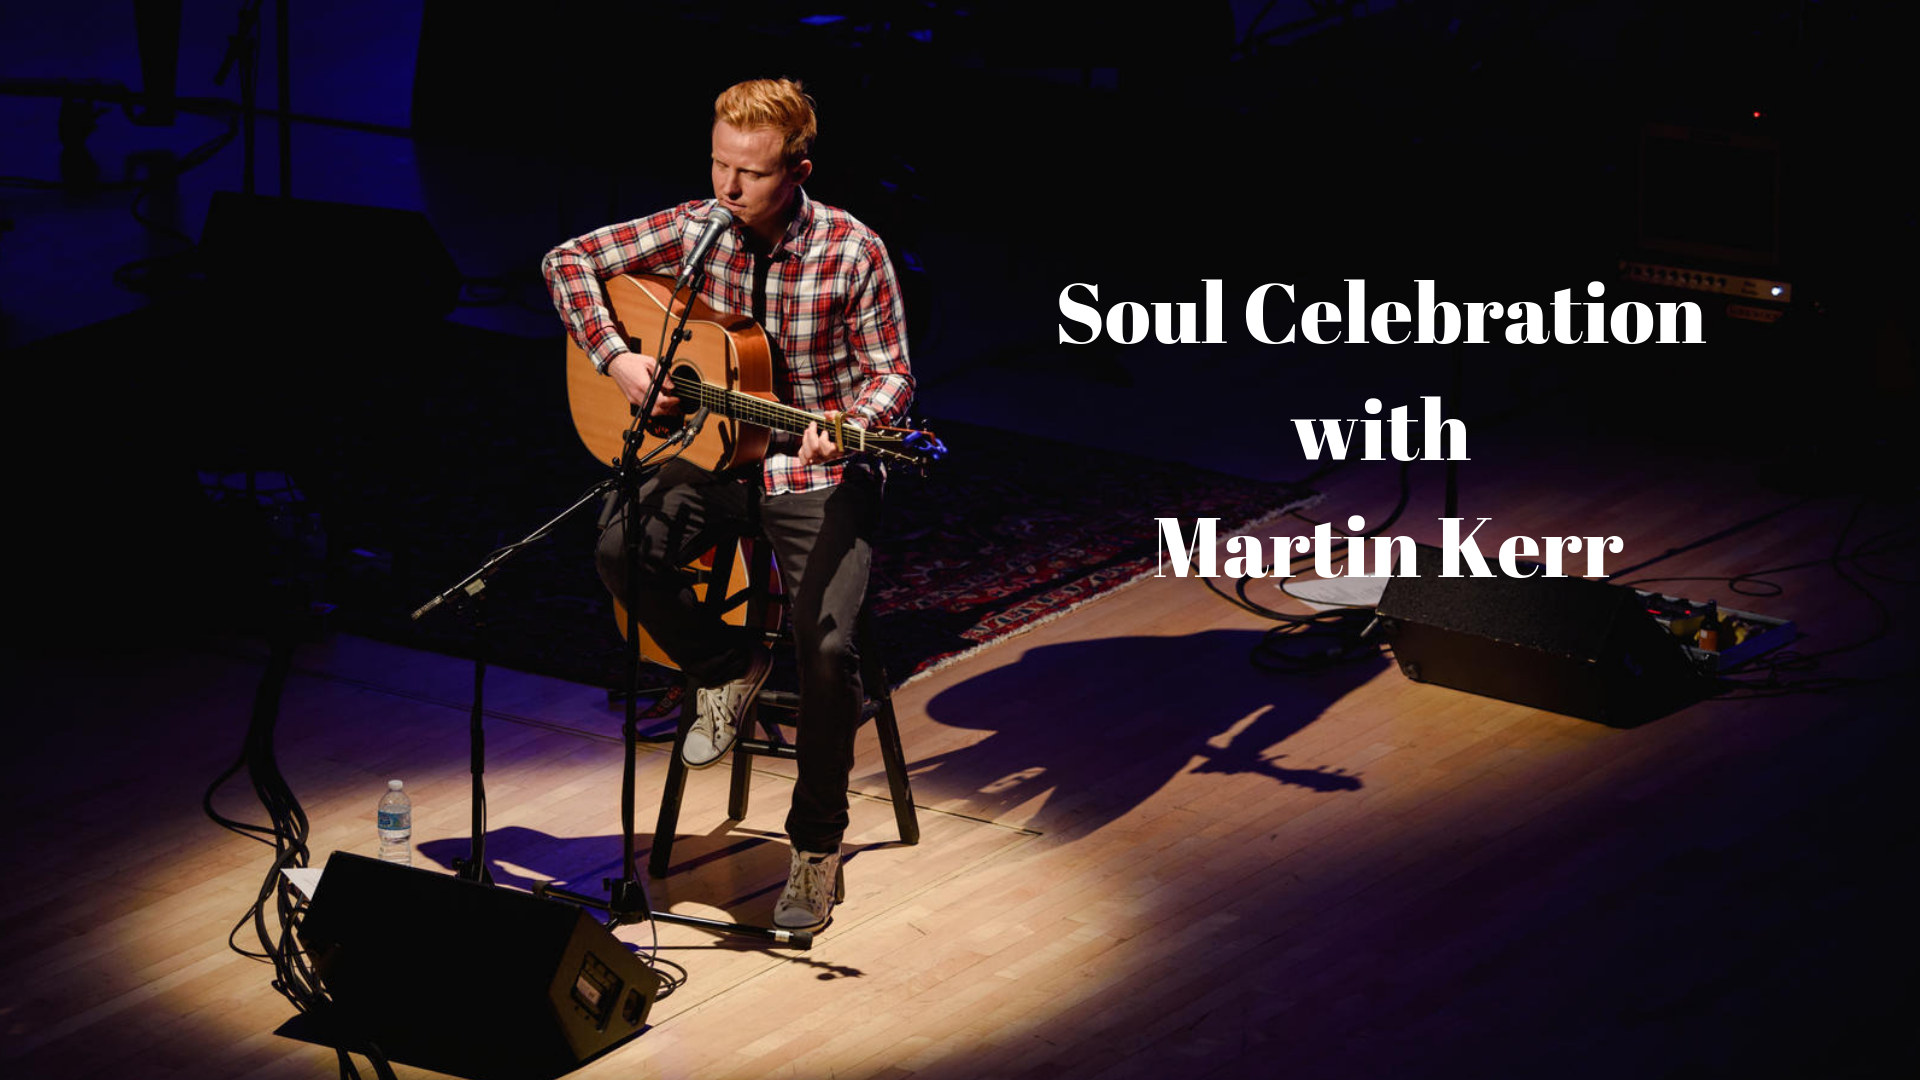 Soul Celebration with Martin Kerr (1).png